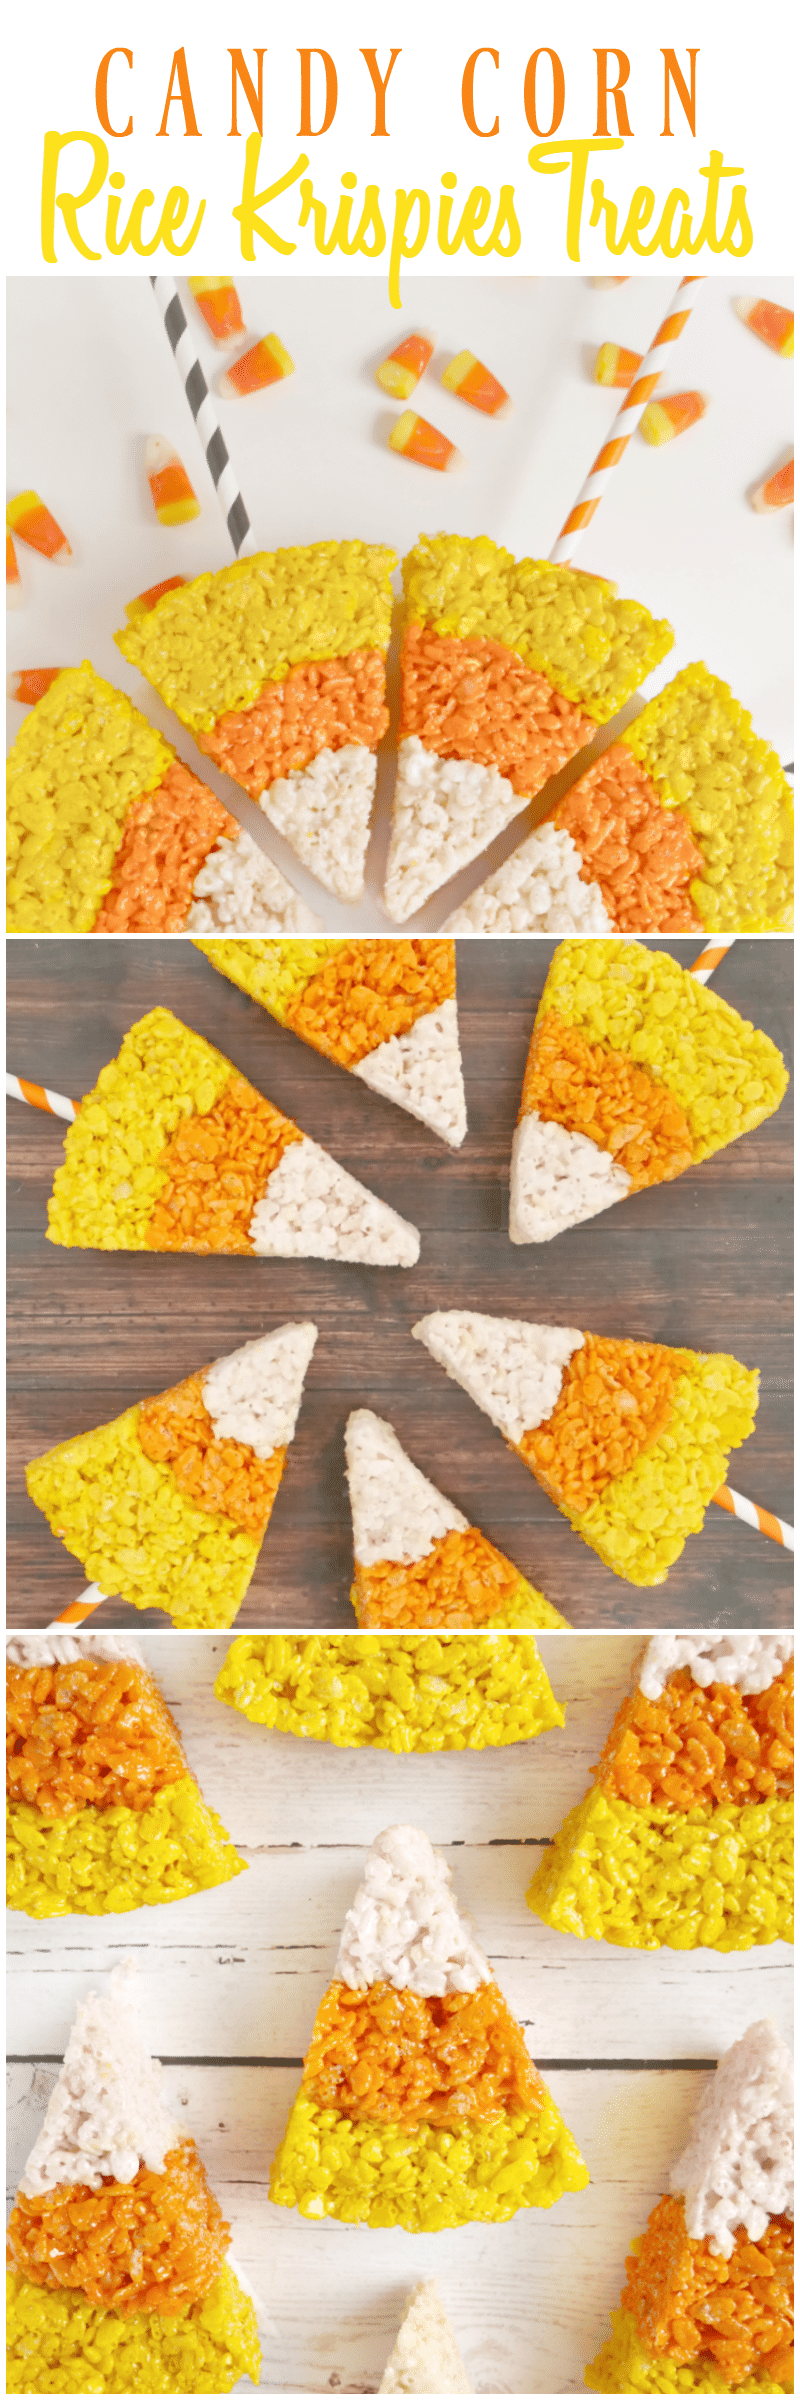 Candy Corn Rice Krispies Treats - these are a HUGE hit with kids and adults!